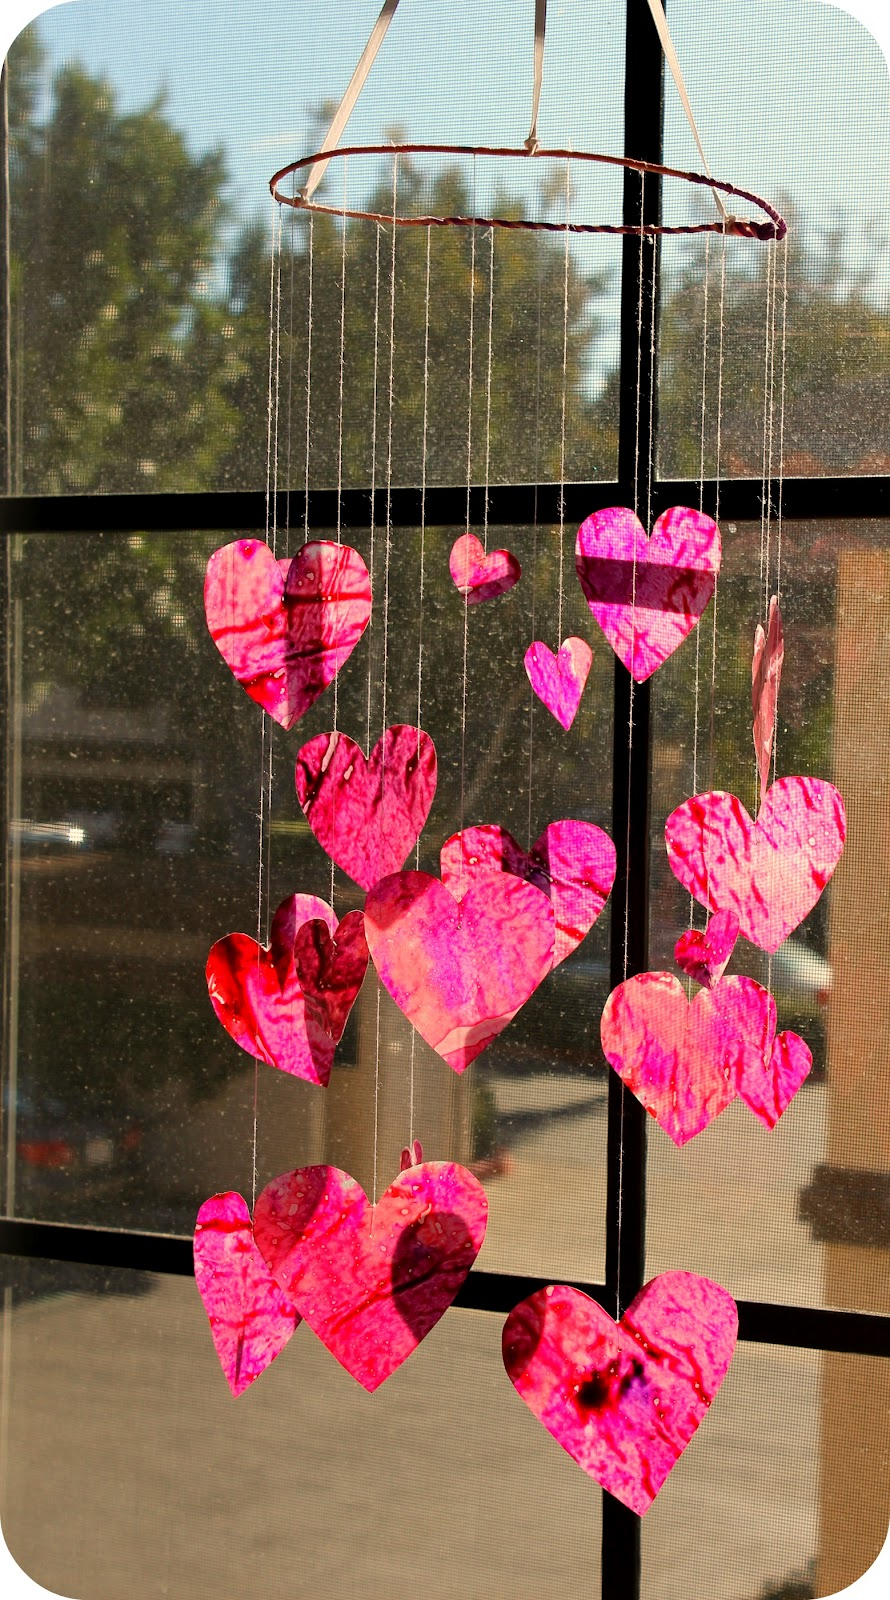 DiY Project: Crayon Waxed Paper Stained Glass Heart Mobile